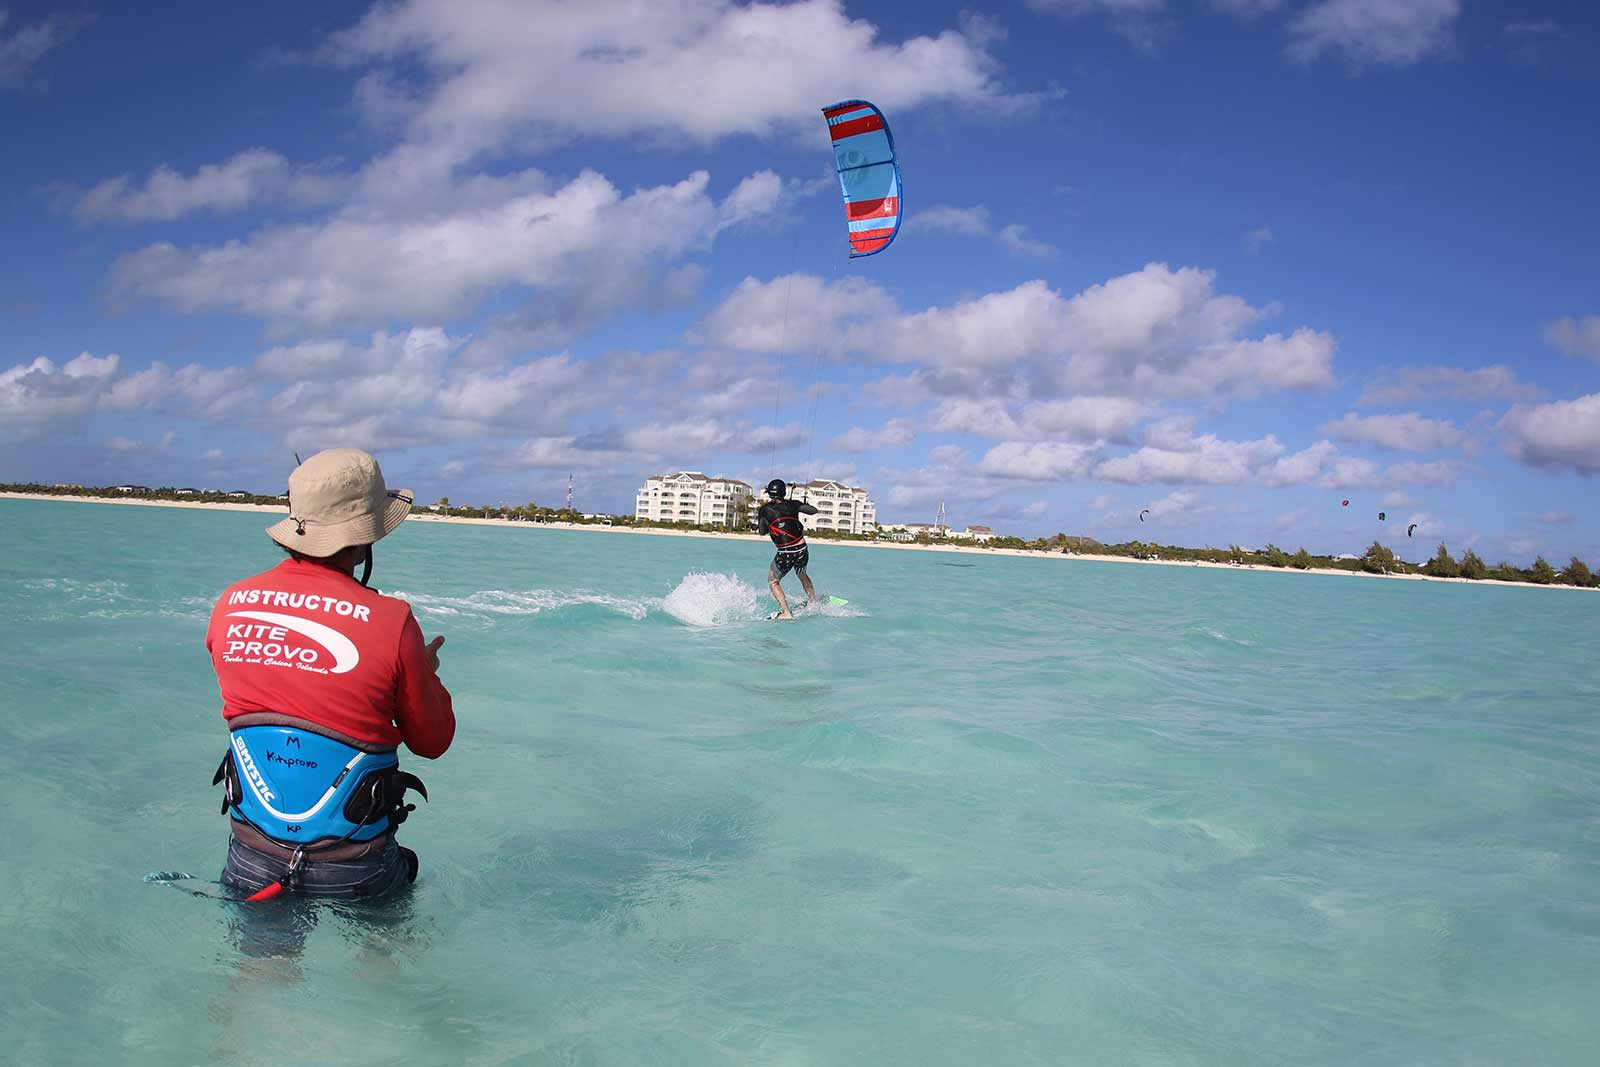 Take a kitesurfing lesson